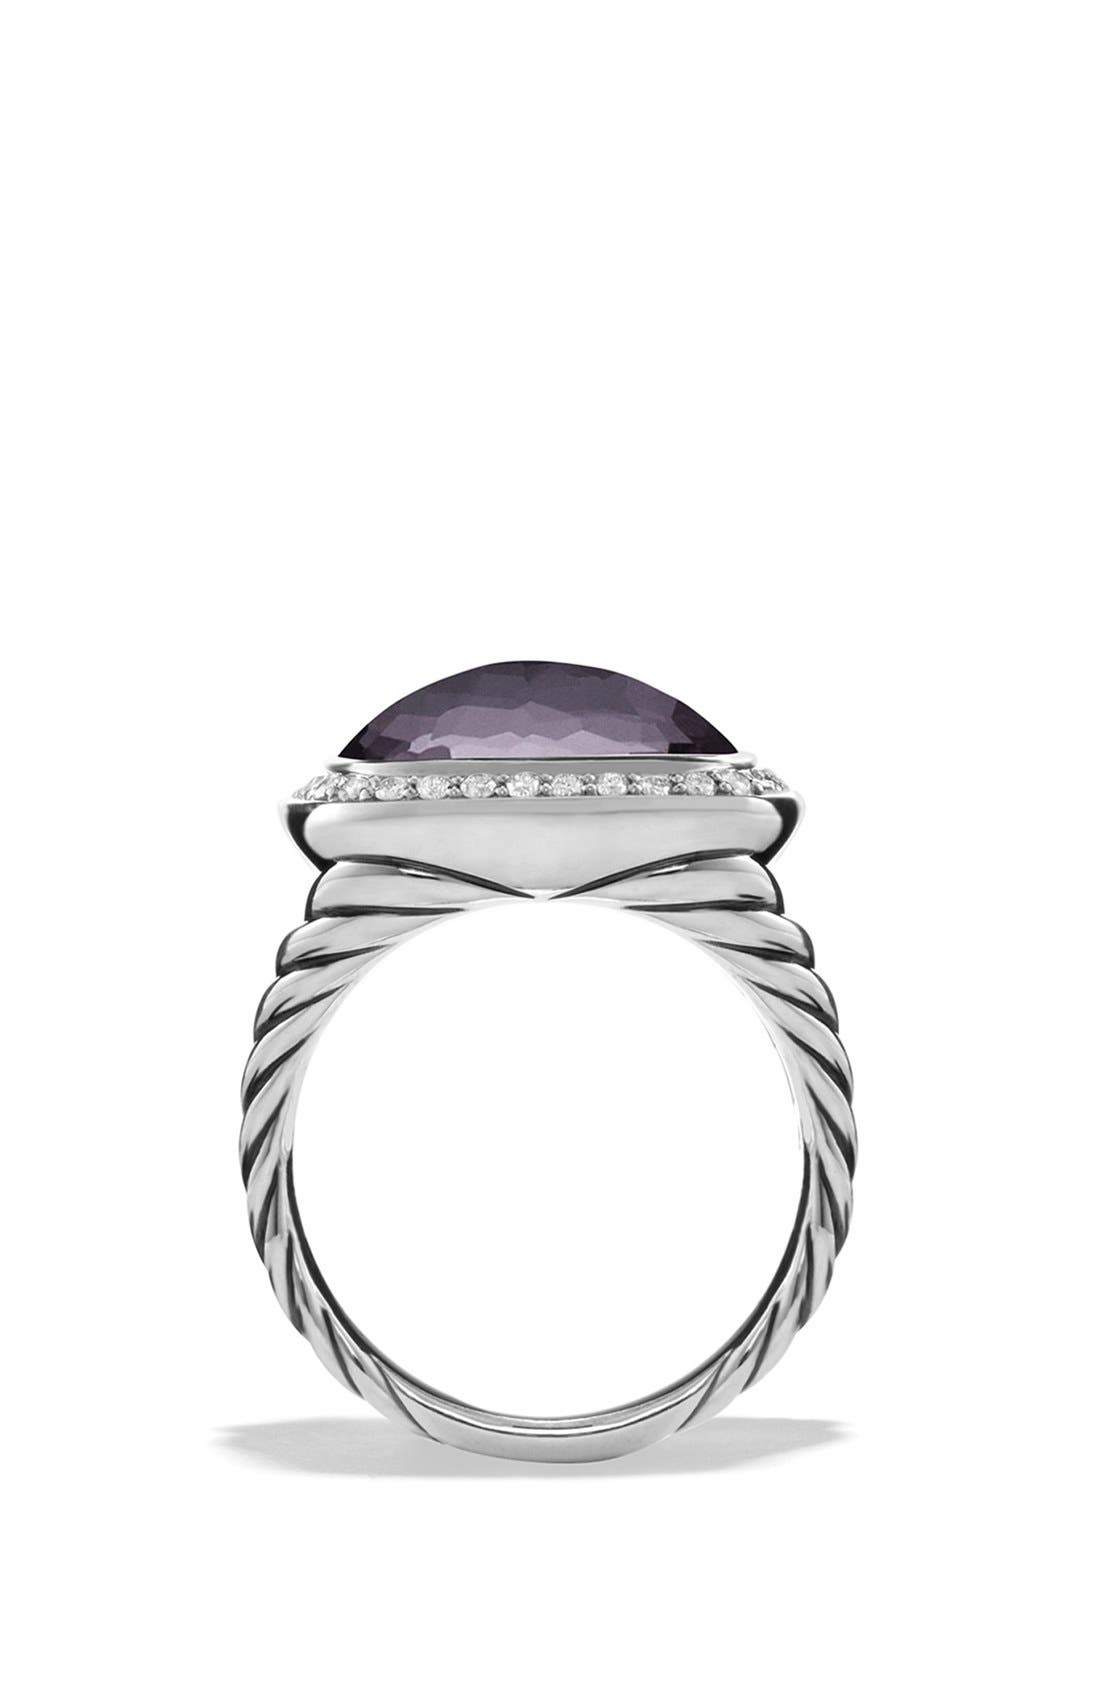 'Albion' Ring with Semiprecious Stone and Diamonds,                             Alternate thumbnail 2, color,                             Amethyst/ Hematine